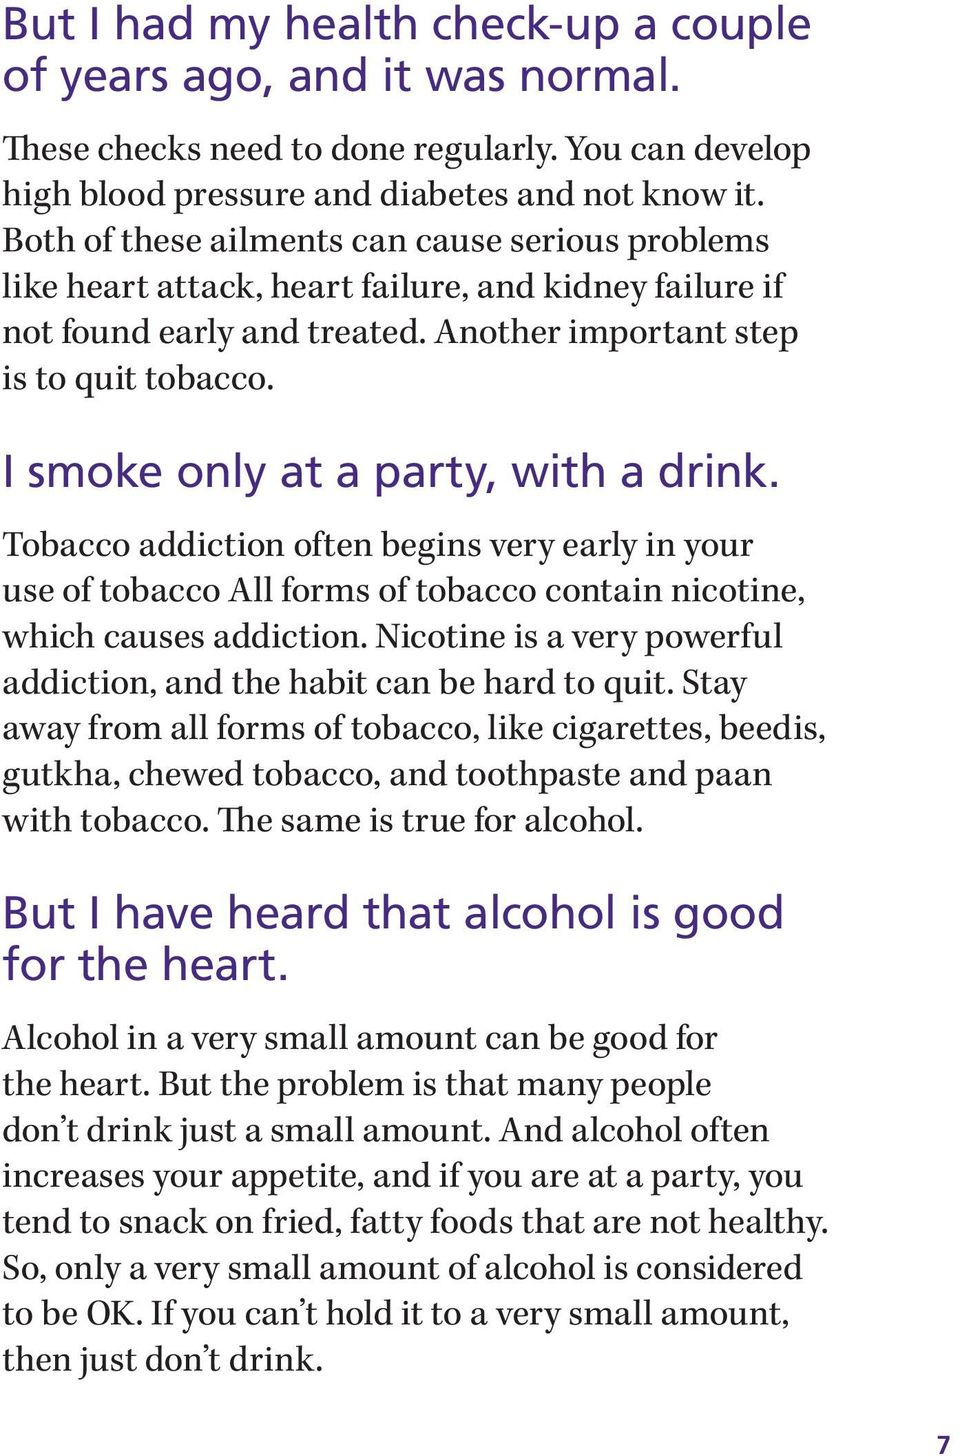 I smoke only at a party, with a drink. Tobacco addiction often begins very early in your use of tobacco All forms of tobacco contain nicotine, which causes addiction.